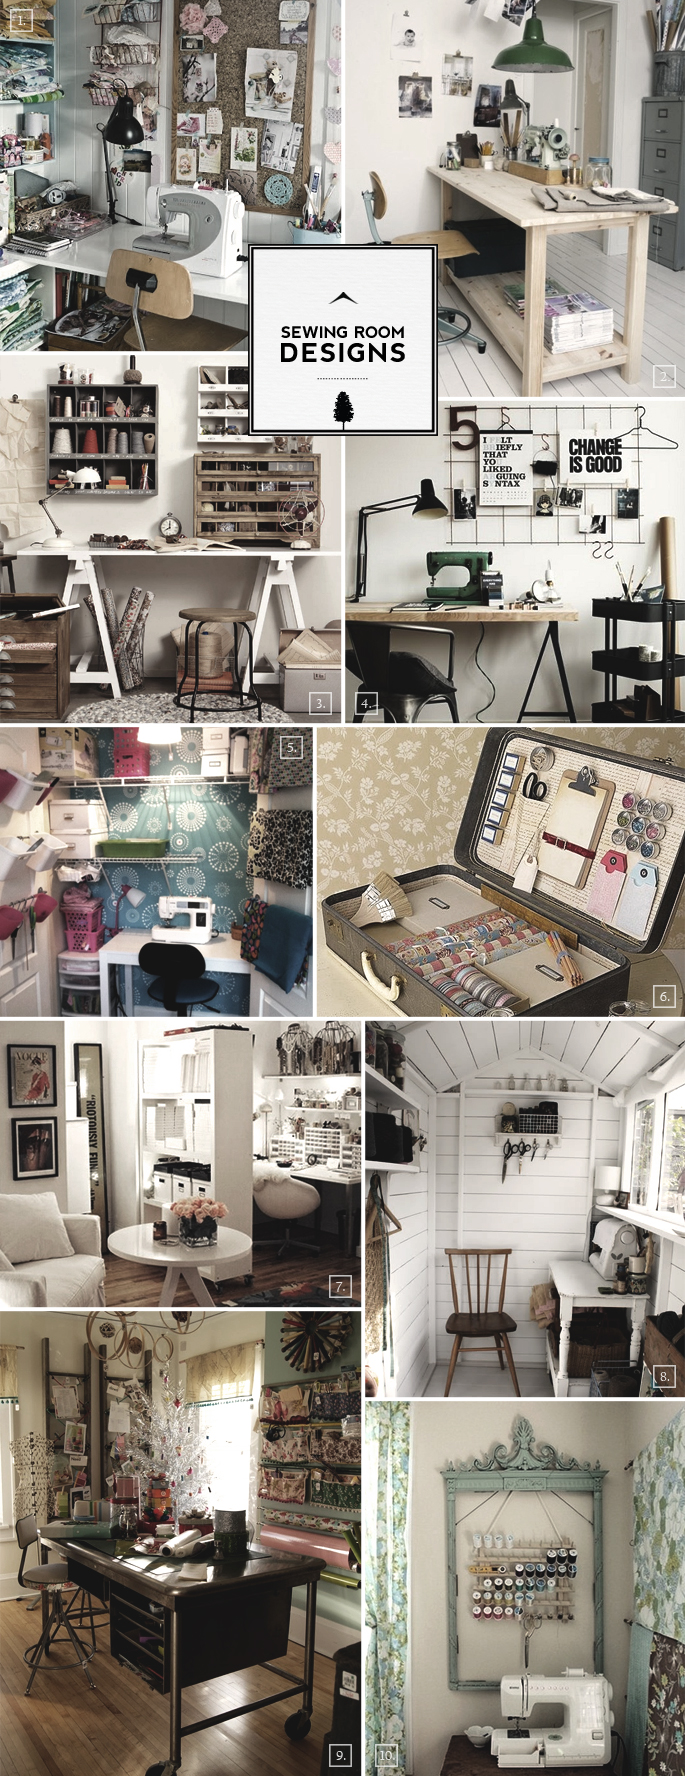 Sewing Room Designs Large And Small To Colorful And